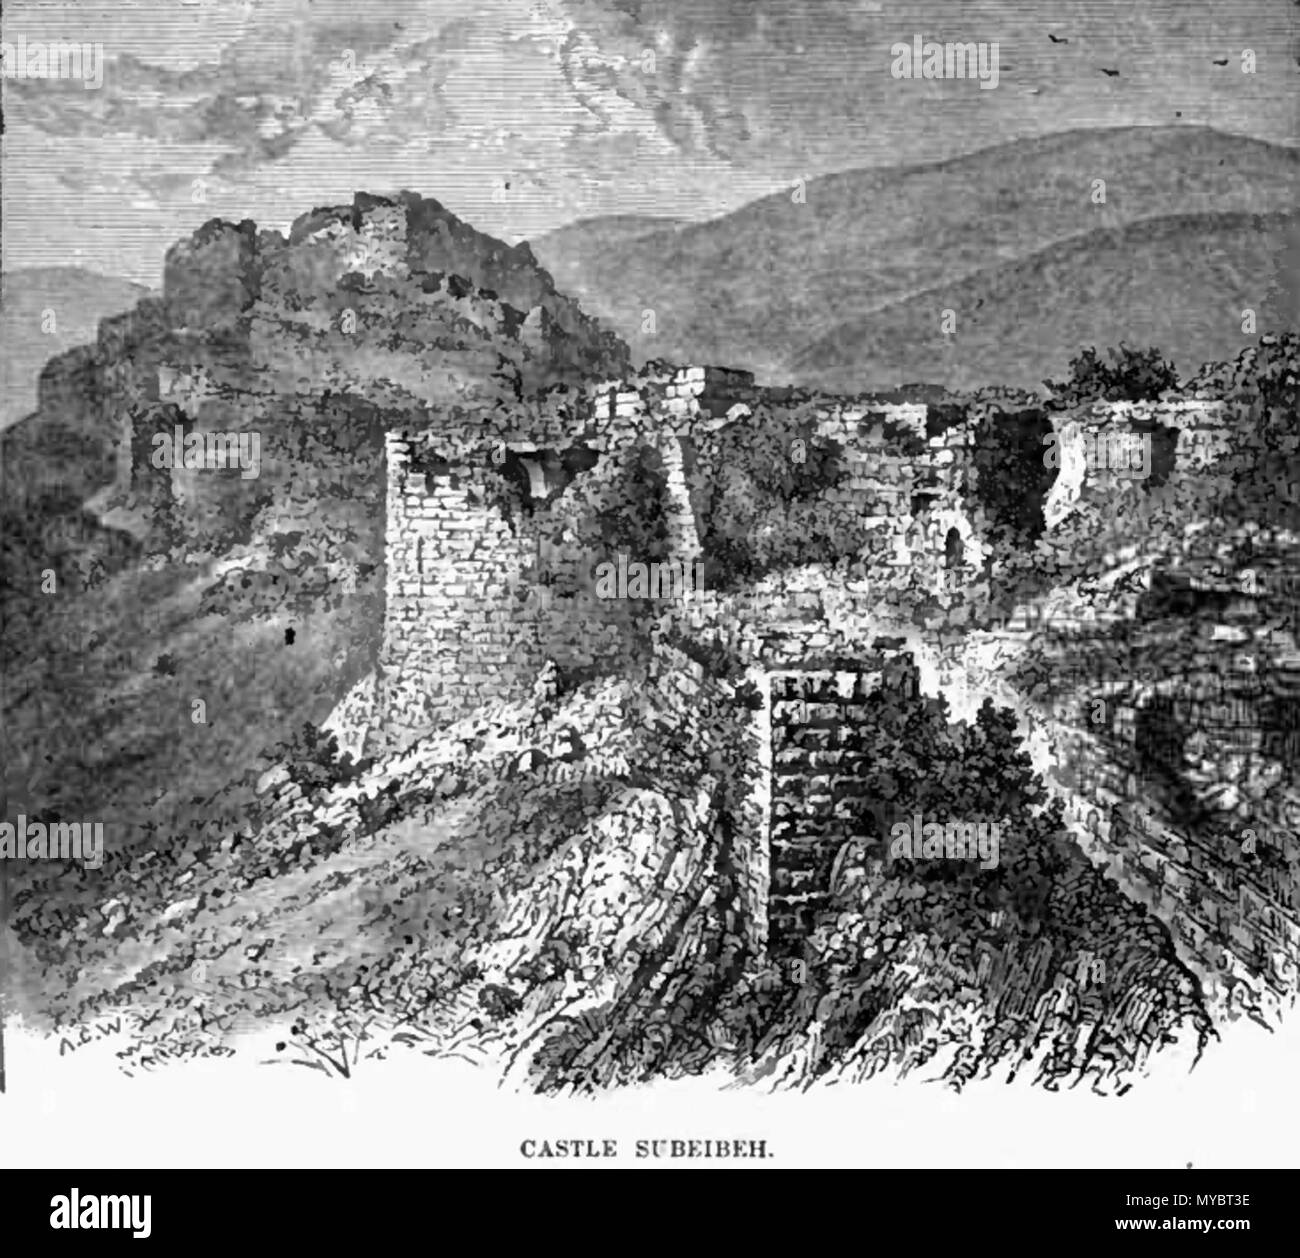 . English: Nimrod Fortress. al-Subayba. Qala'at Namrud . 1887. Frank S De Hass, 101 Castle subeibeh 1887 - Stock Image